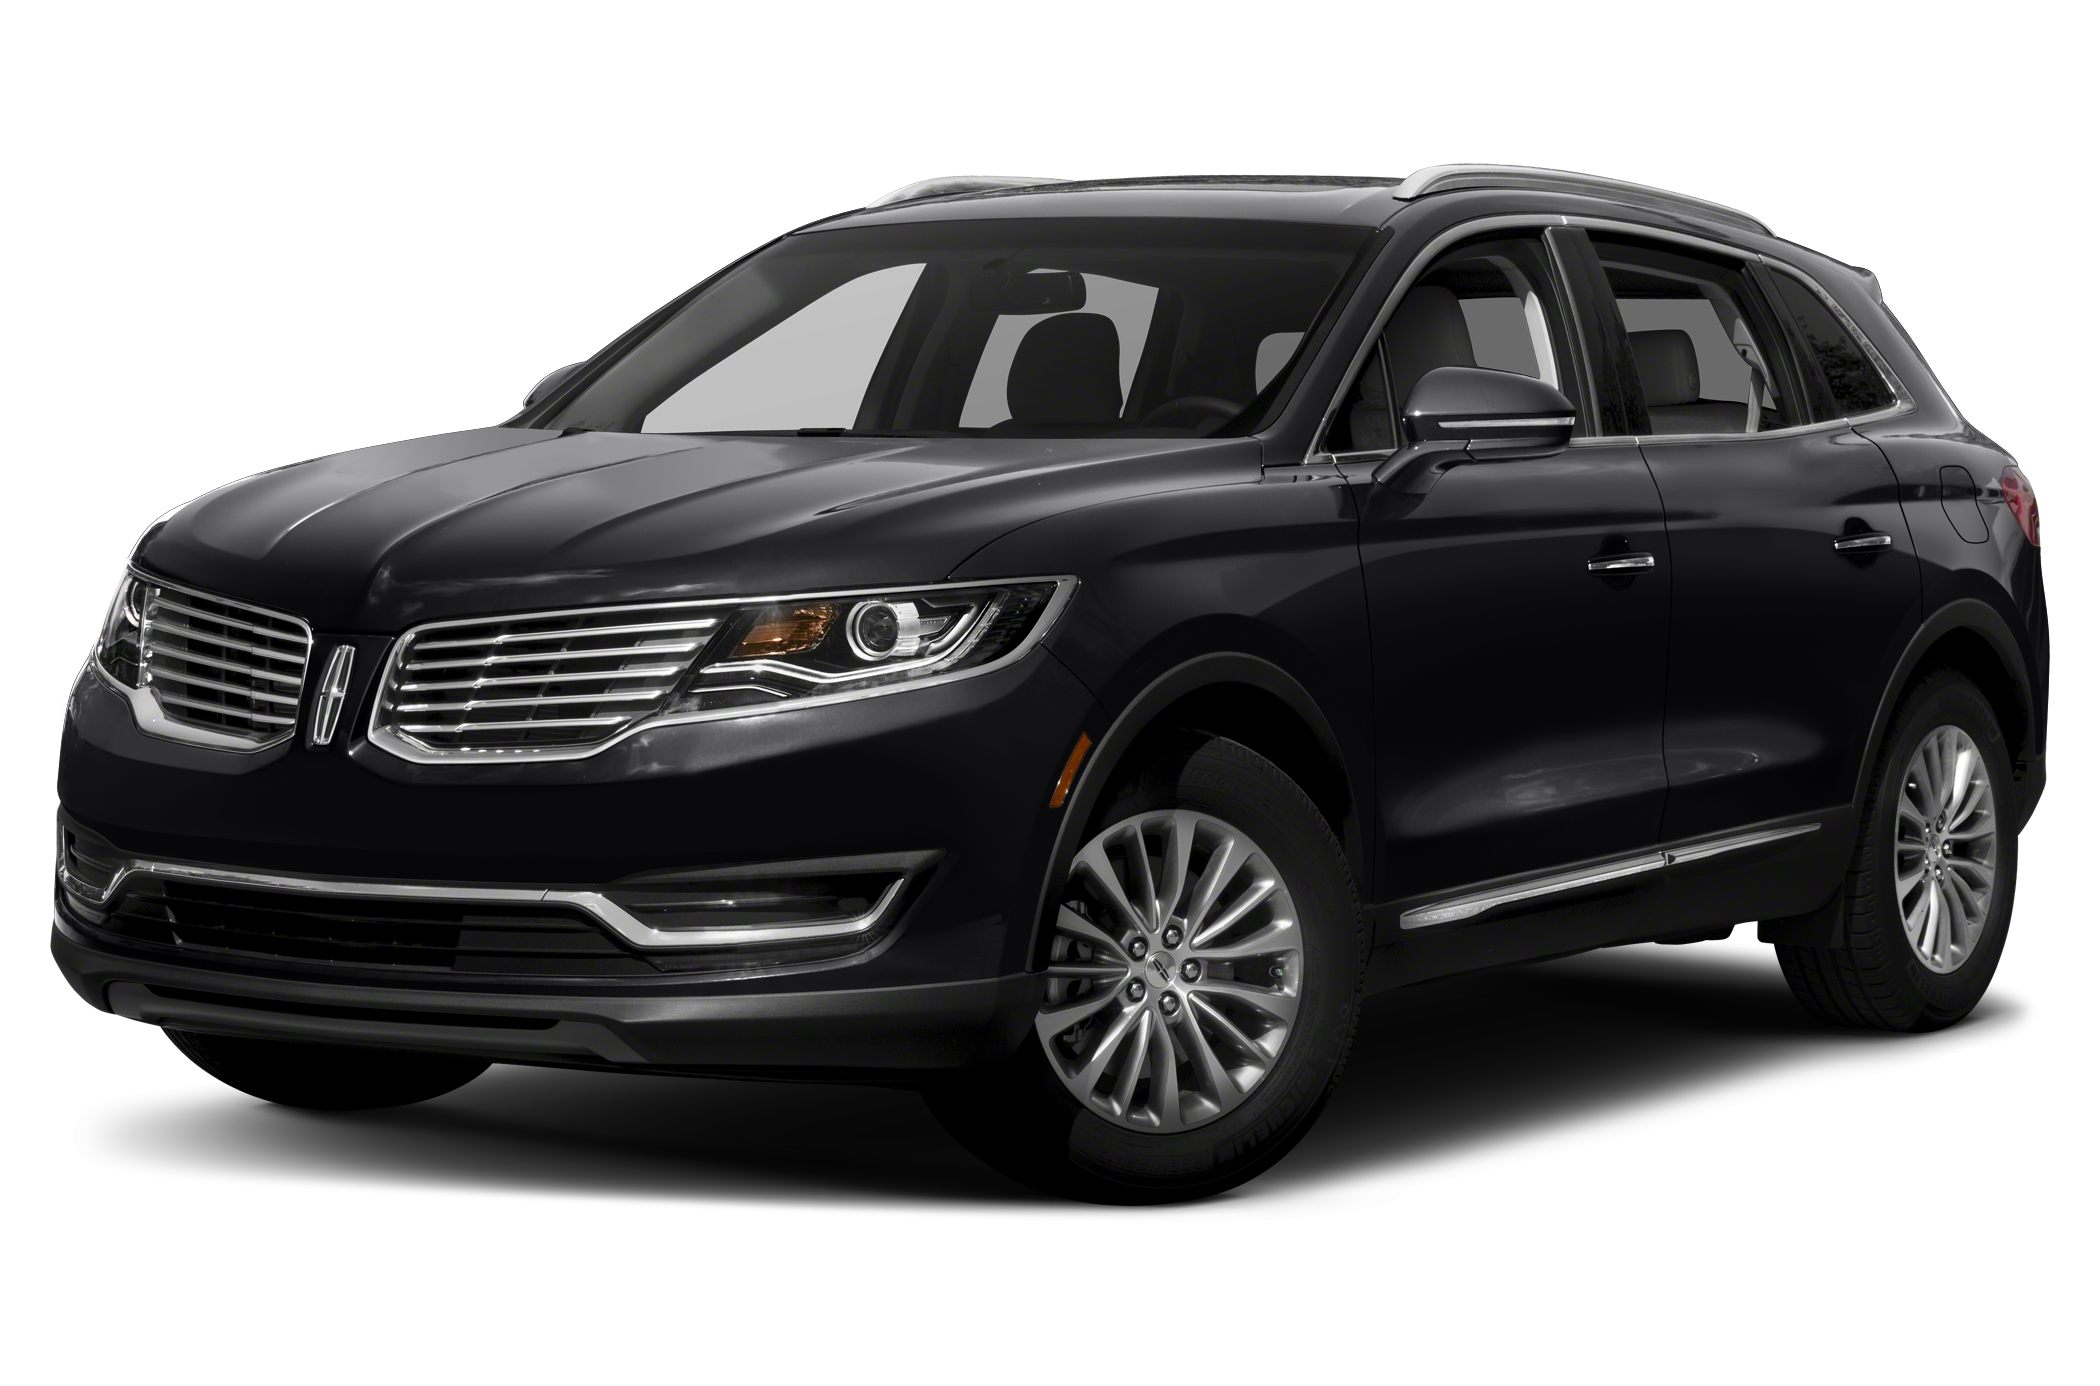 2016 Lincoln MKX Premiere Miles 23Color METALLAC Stock 16X22 VIN 2LMTJ6JR5GBL39775